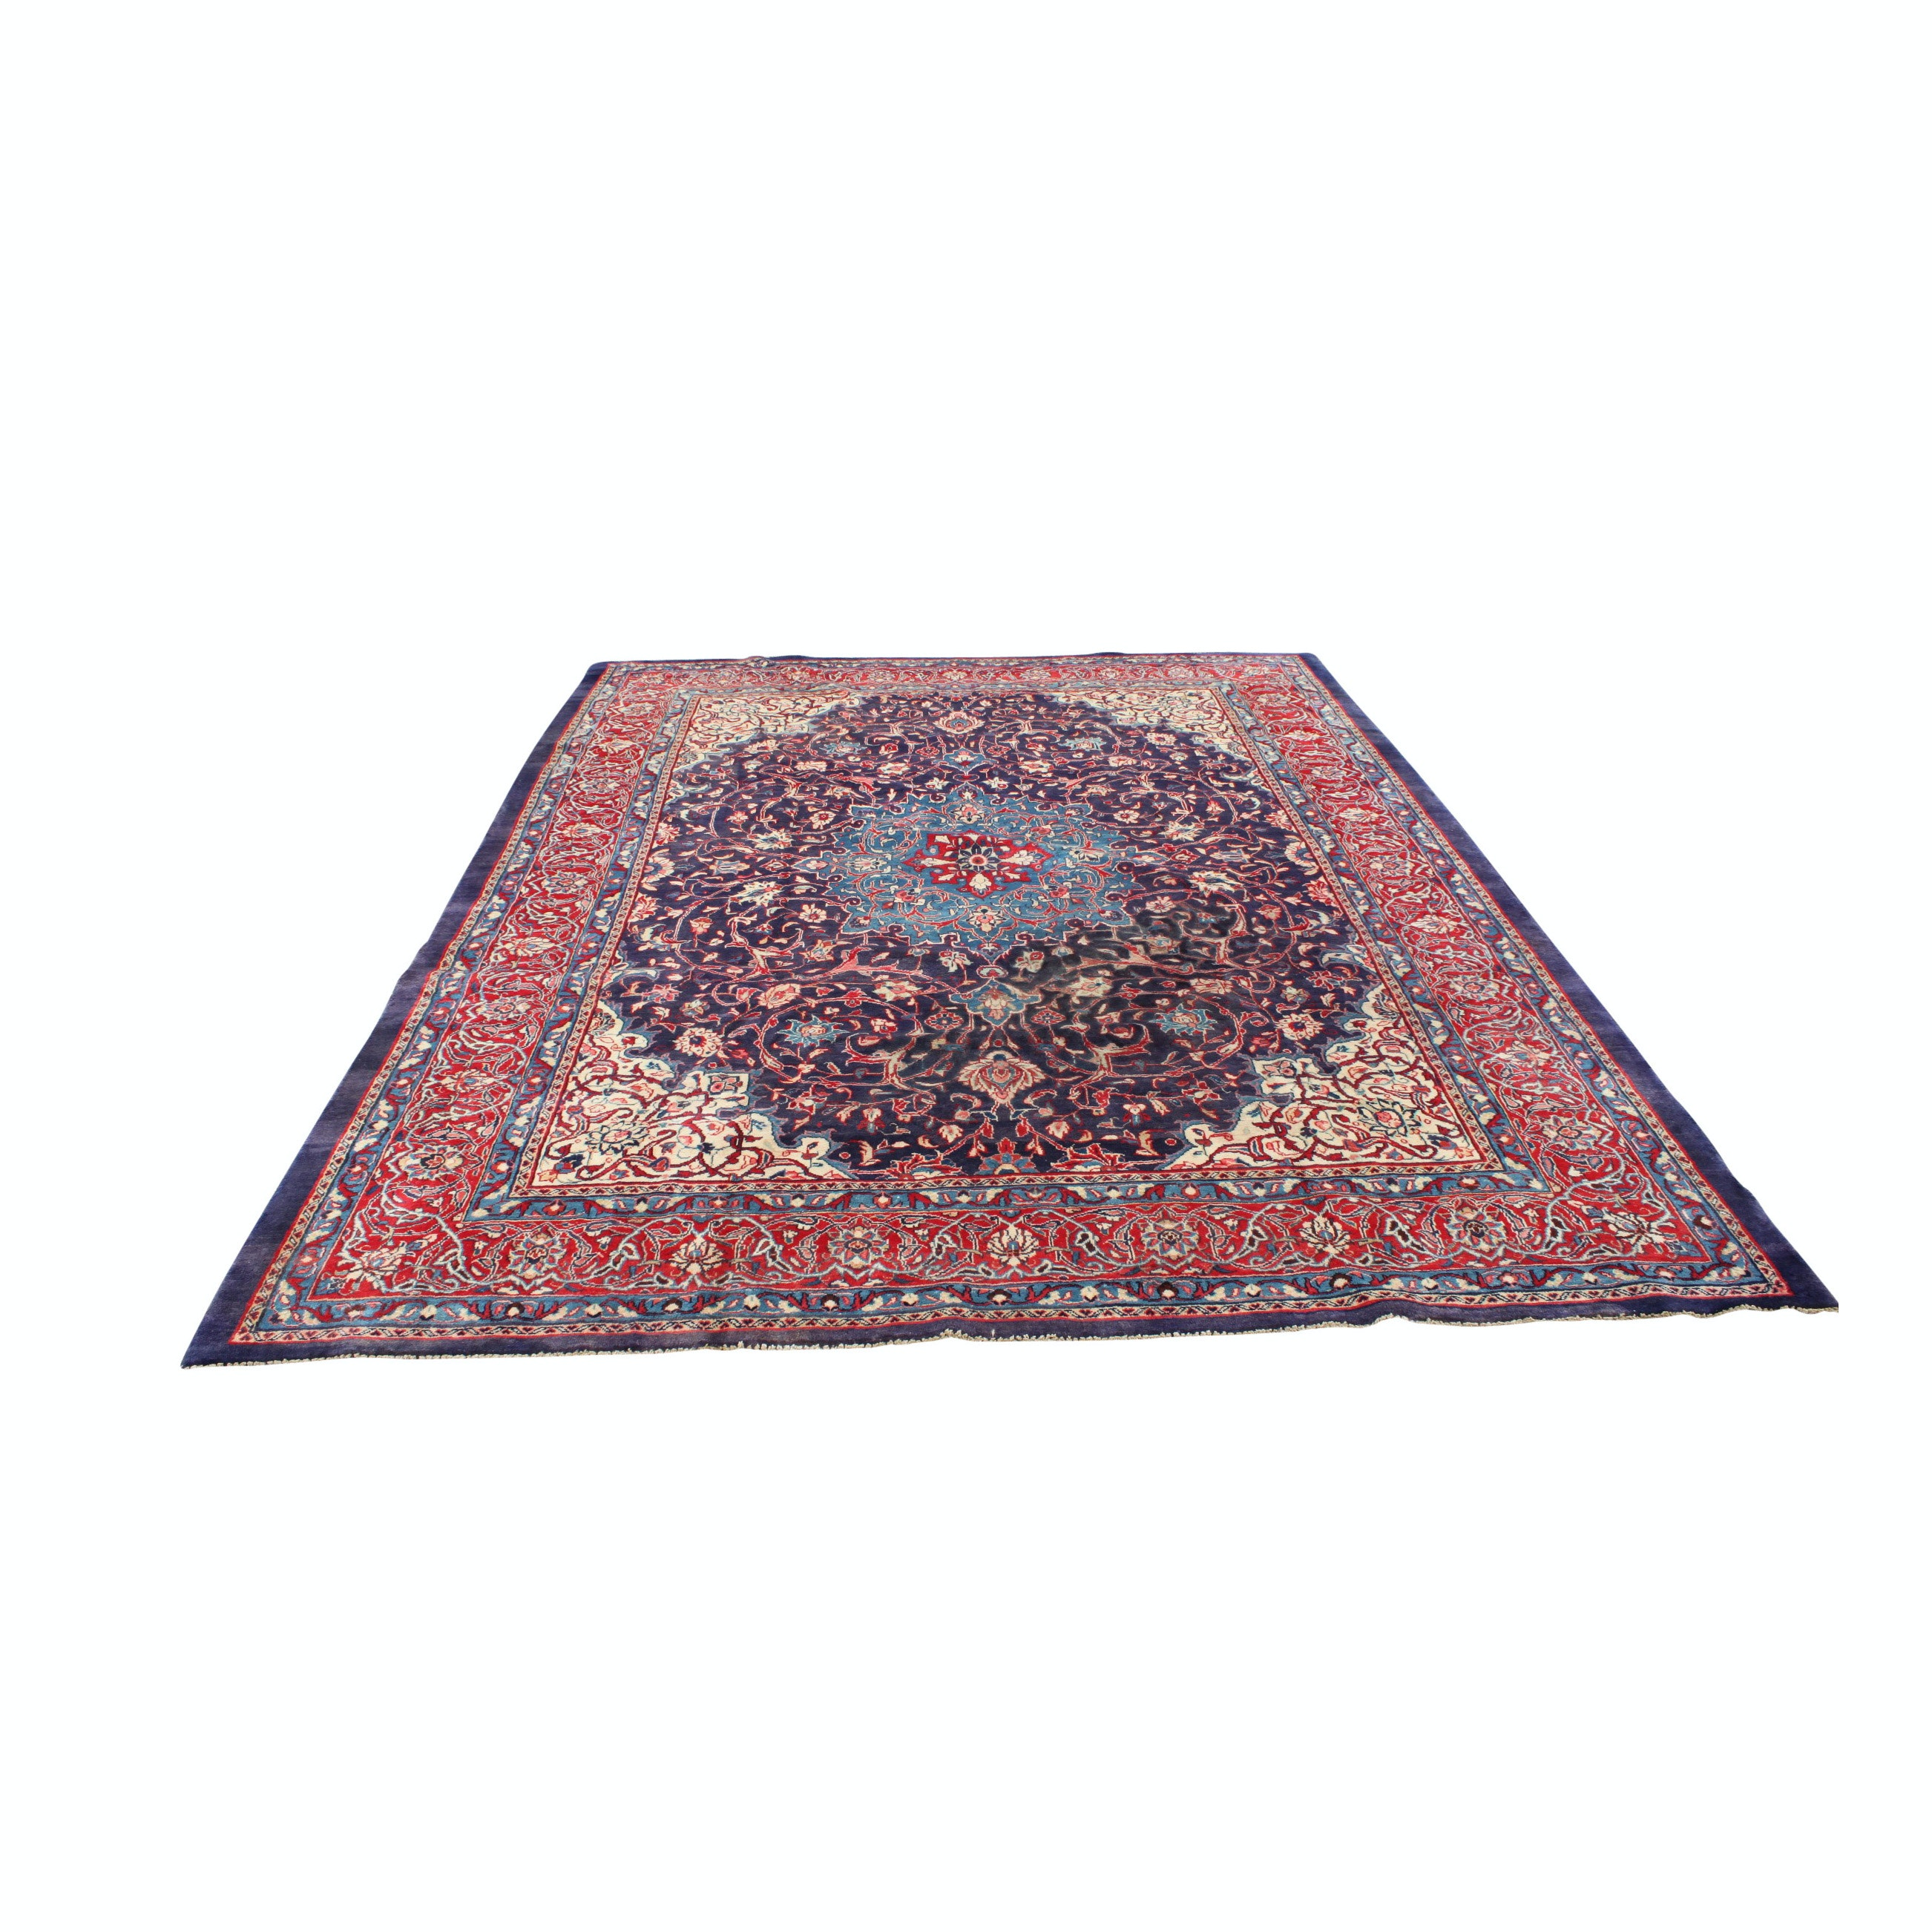 Vintage Hand-knotted Persian Mohajeran Sarouk Wool Room Size Rug